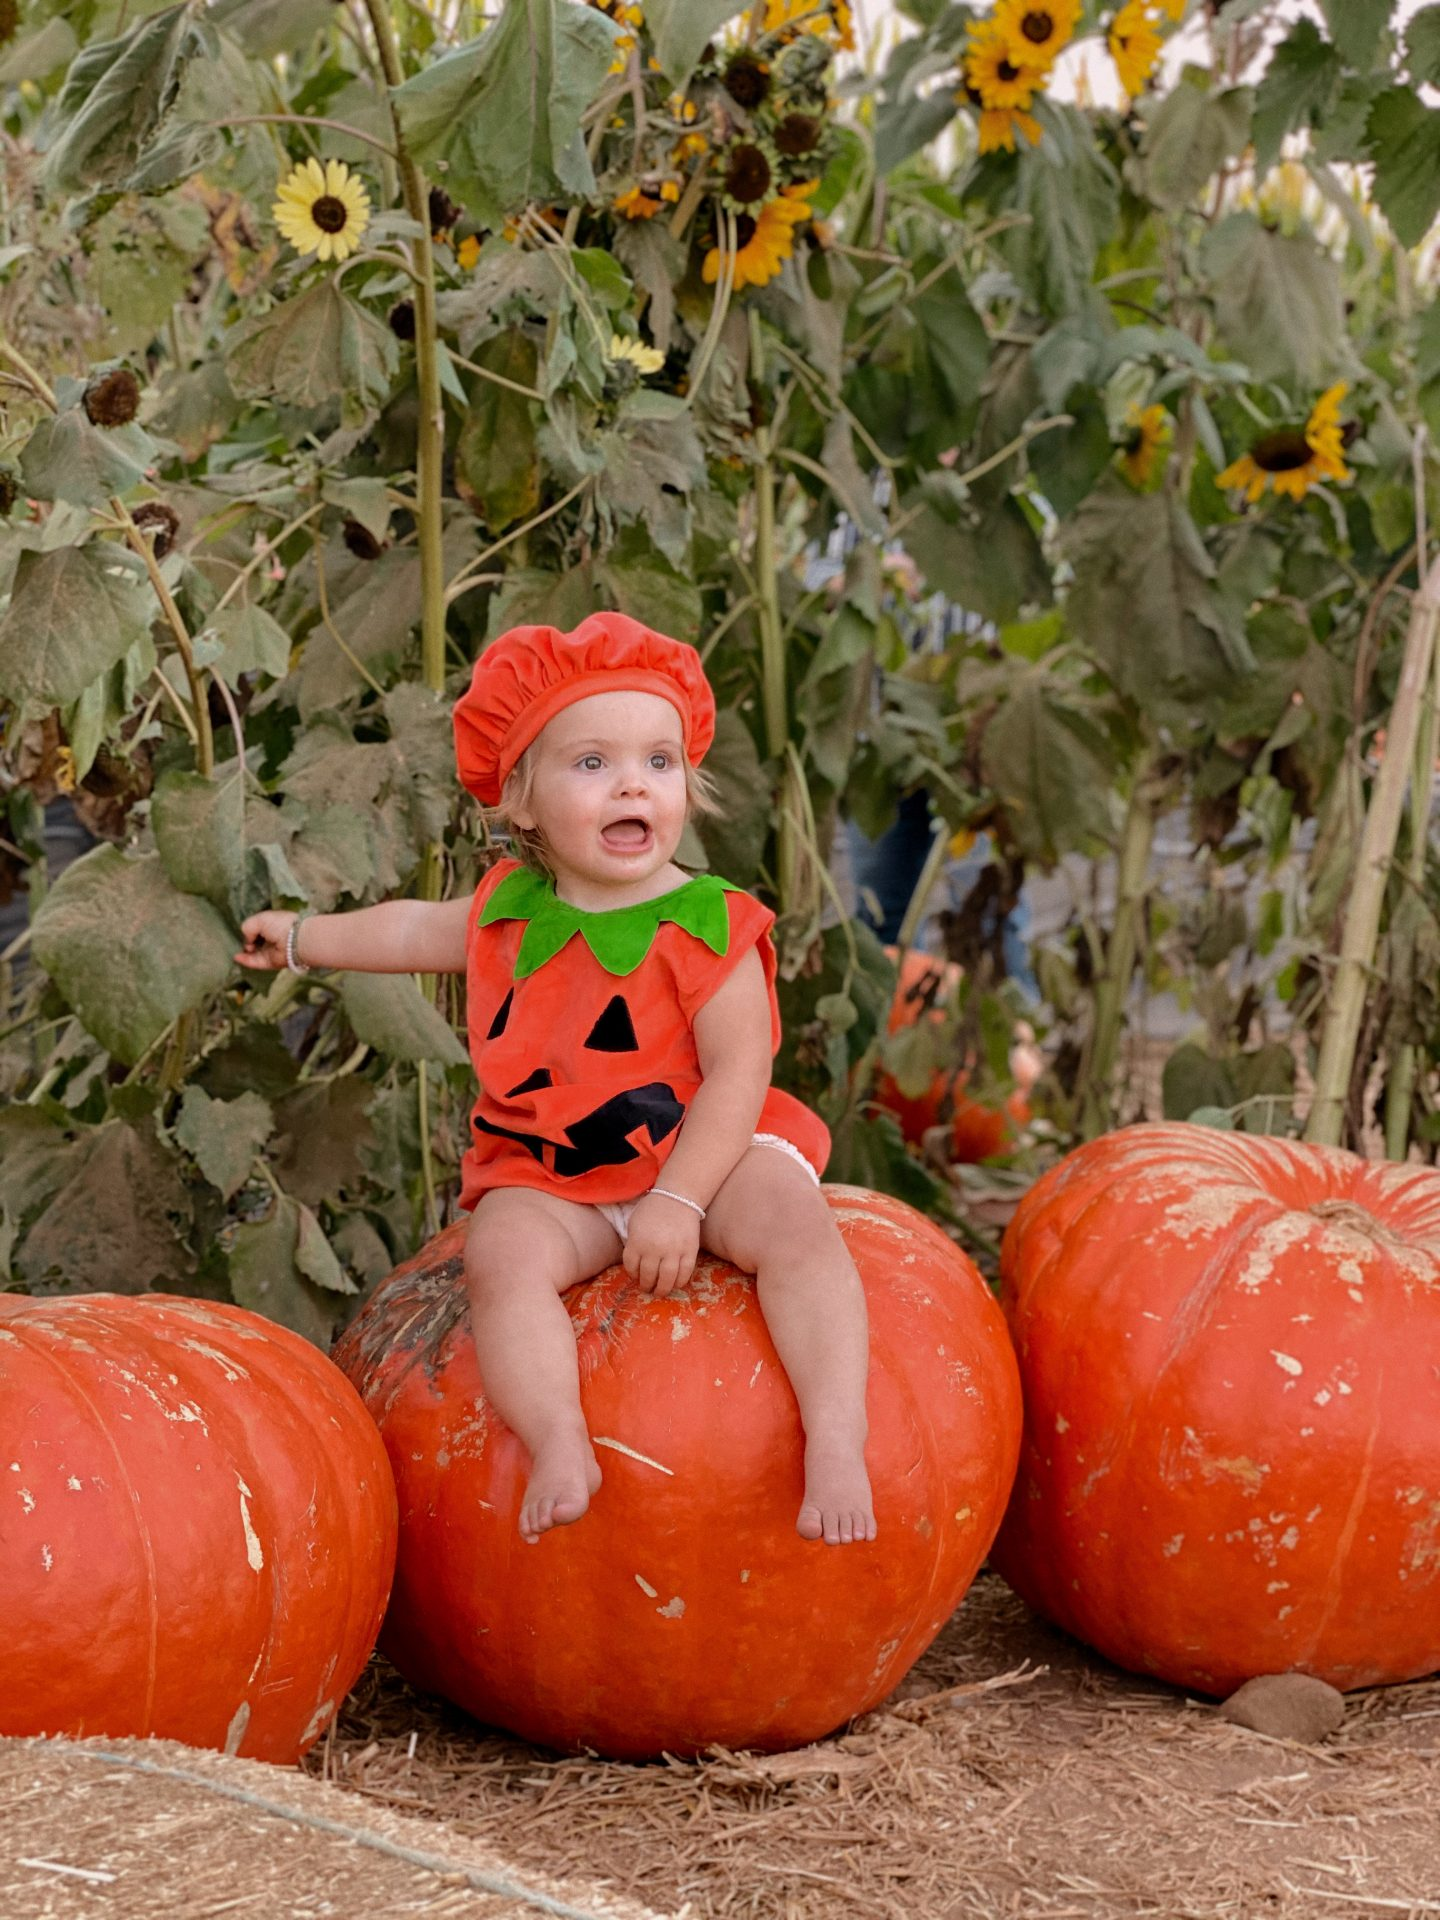 Family Halloween Costumes by popular San Diego lifestyle blog, Navy Grace: image of a kid dressed up as pumpkins and sitting on top of two large pumpkins.